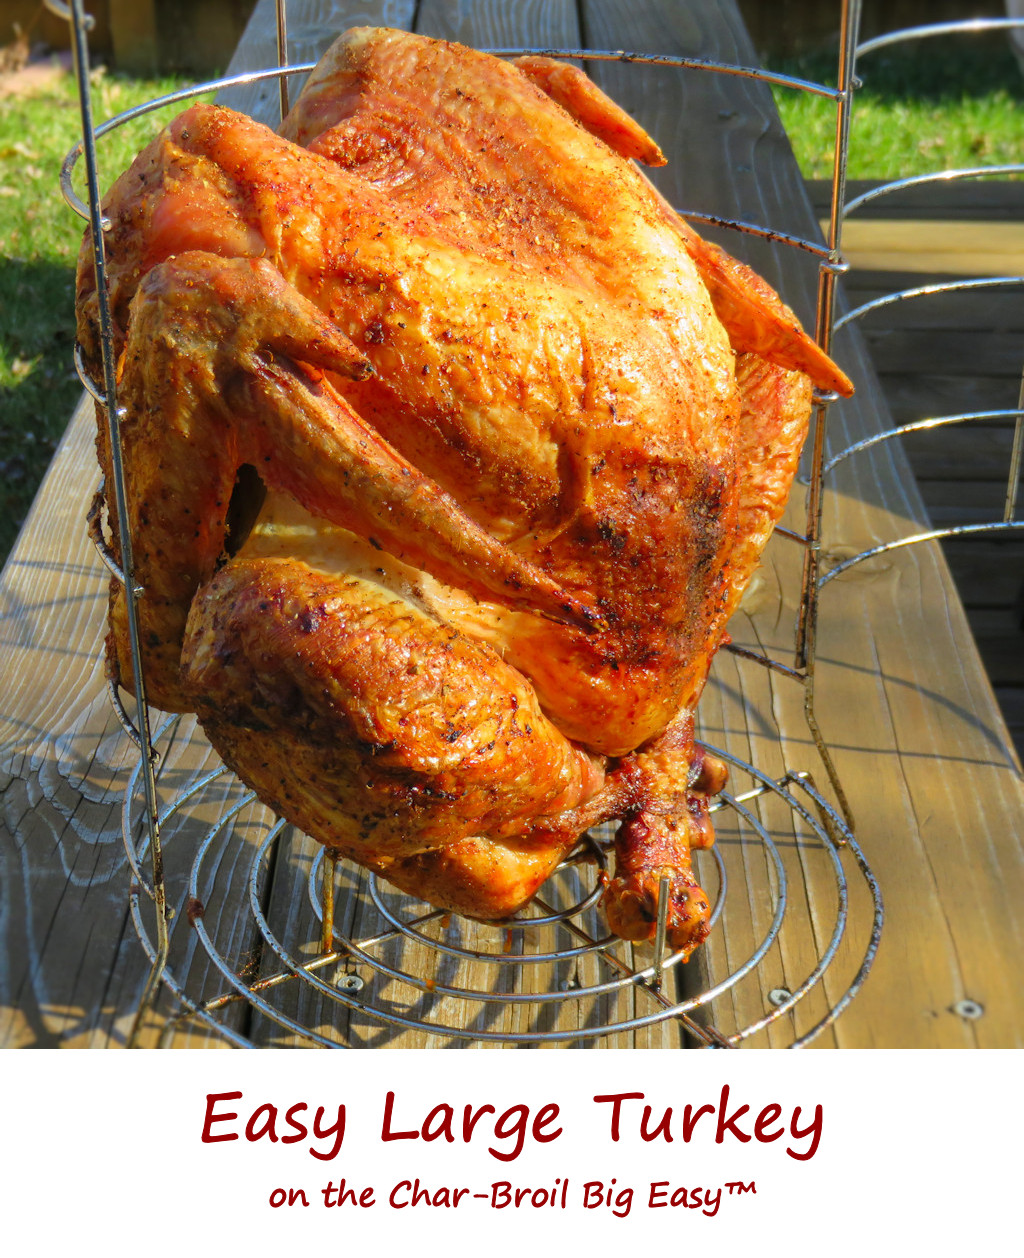 Easy Large Turkey on the Char-Broil Big Easy